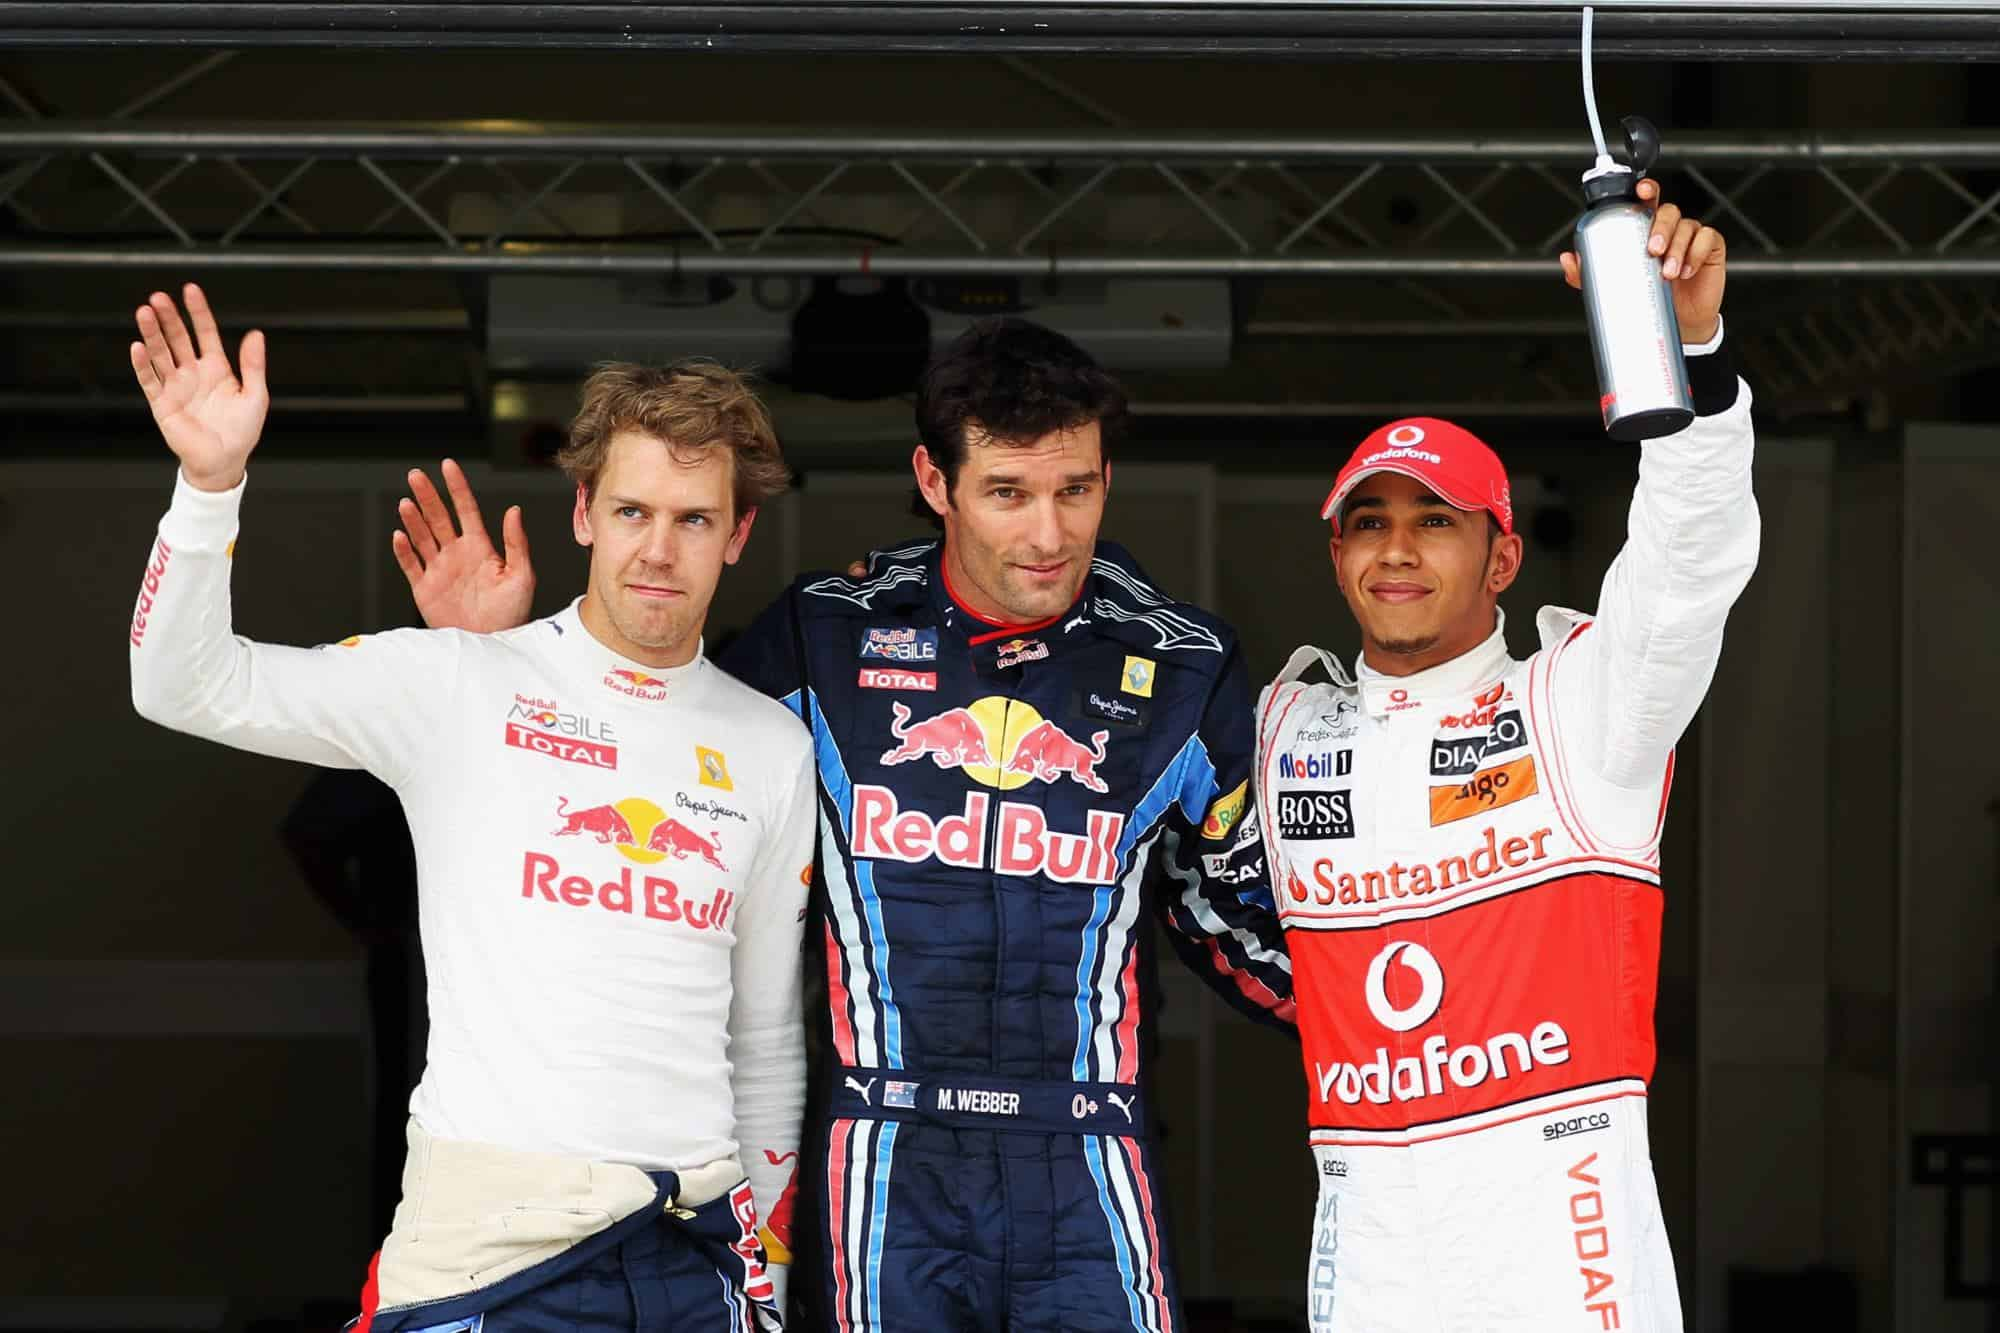 Turkish GP F1 2010 qualifying top three Webber Vettel Hamilton Photo Red Bull